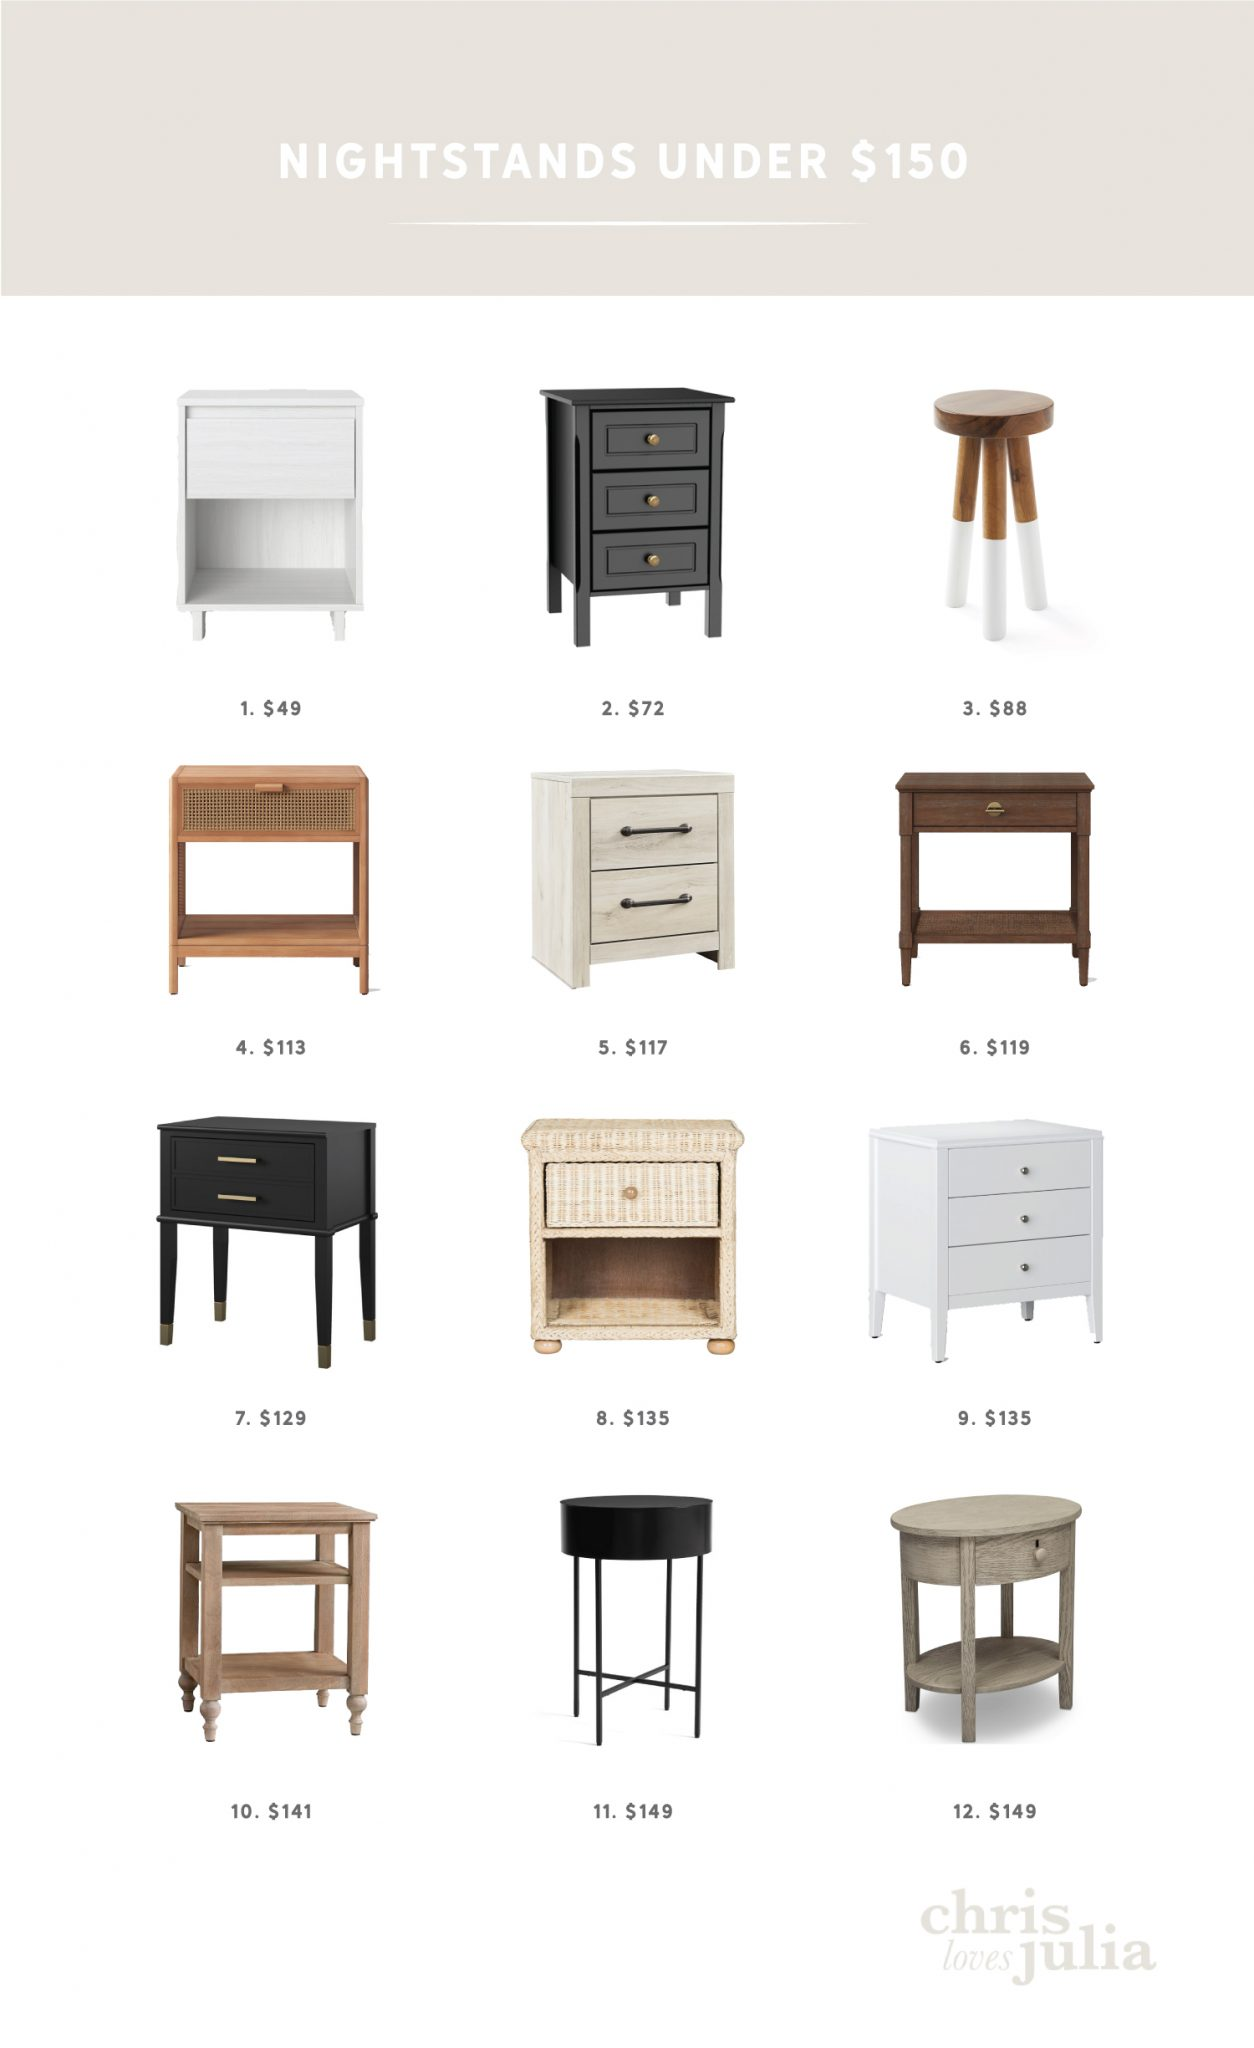 Nightstands For Every Budget Chris Loves Julia